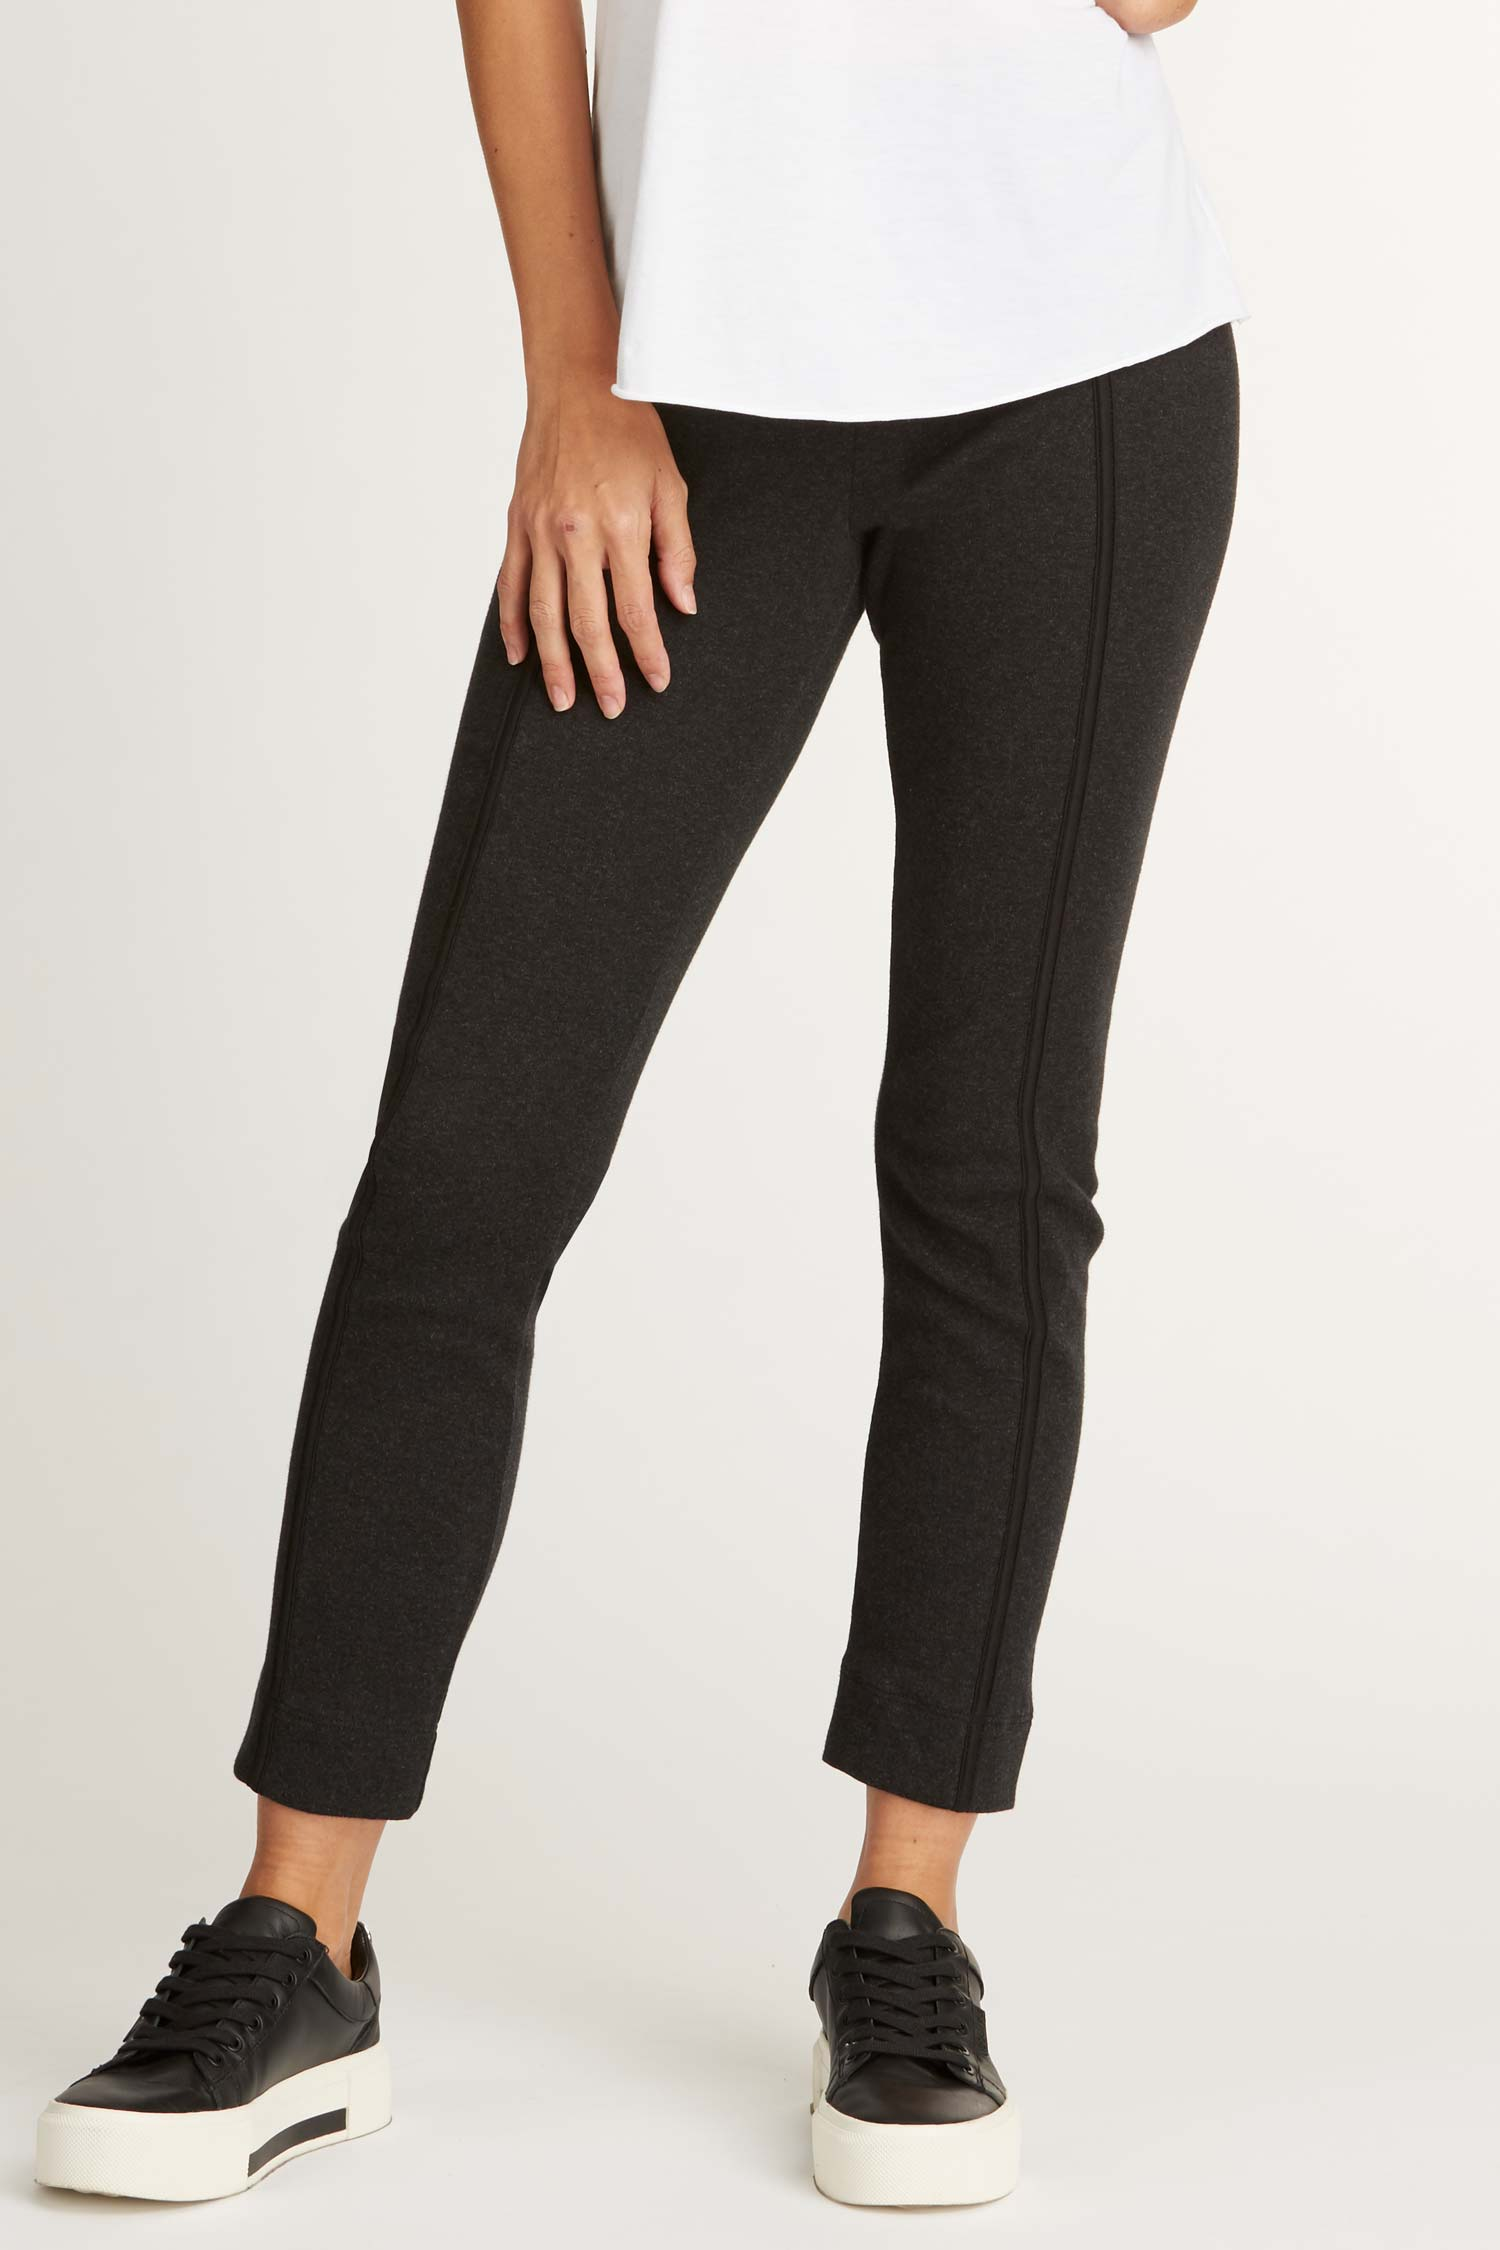 Womens Pants Black Organic Cotton Clothing Pant